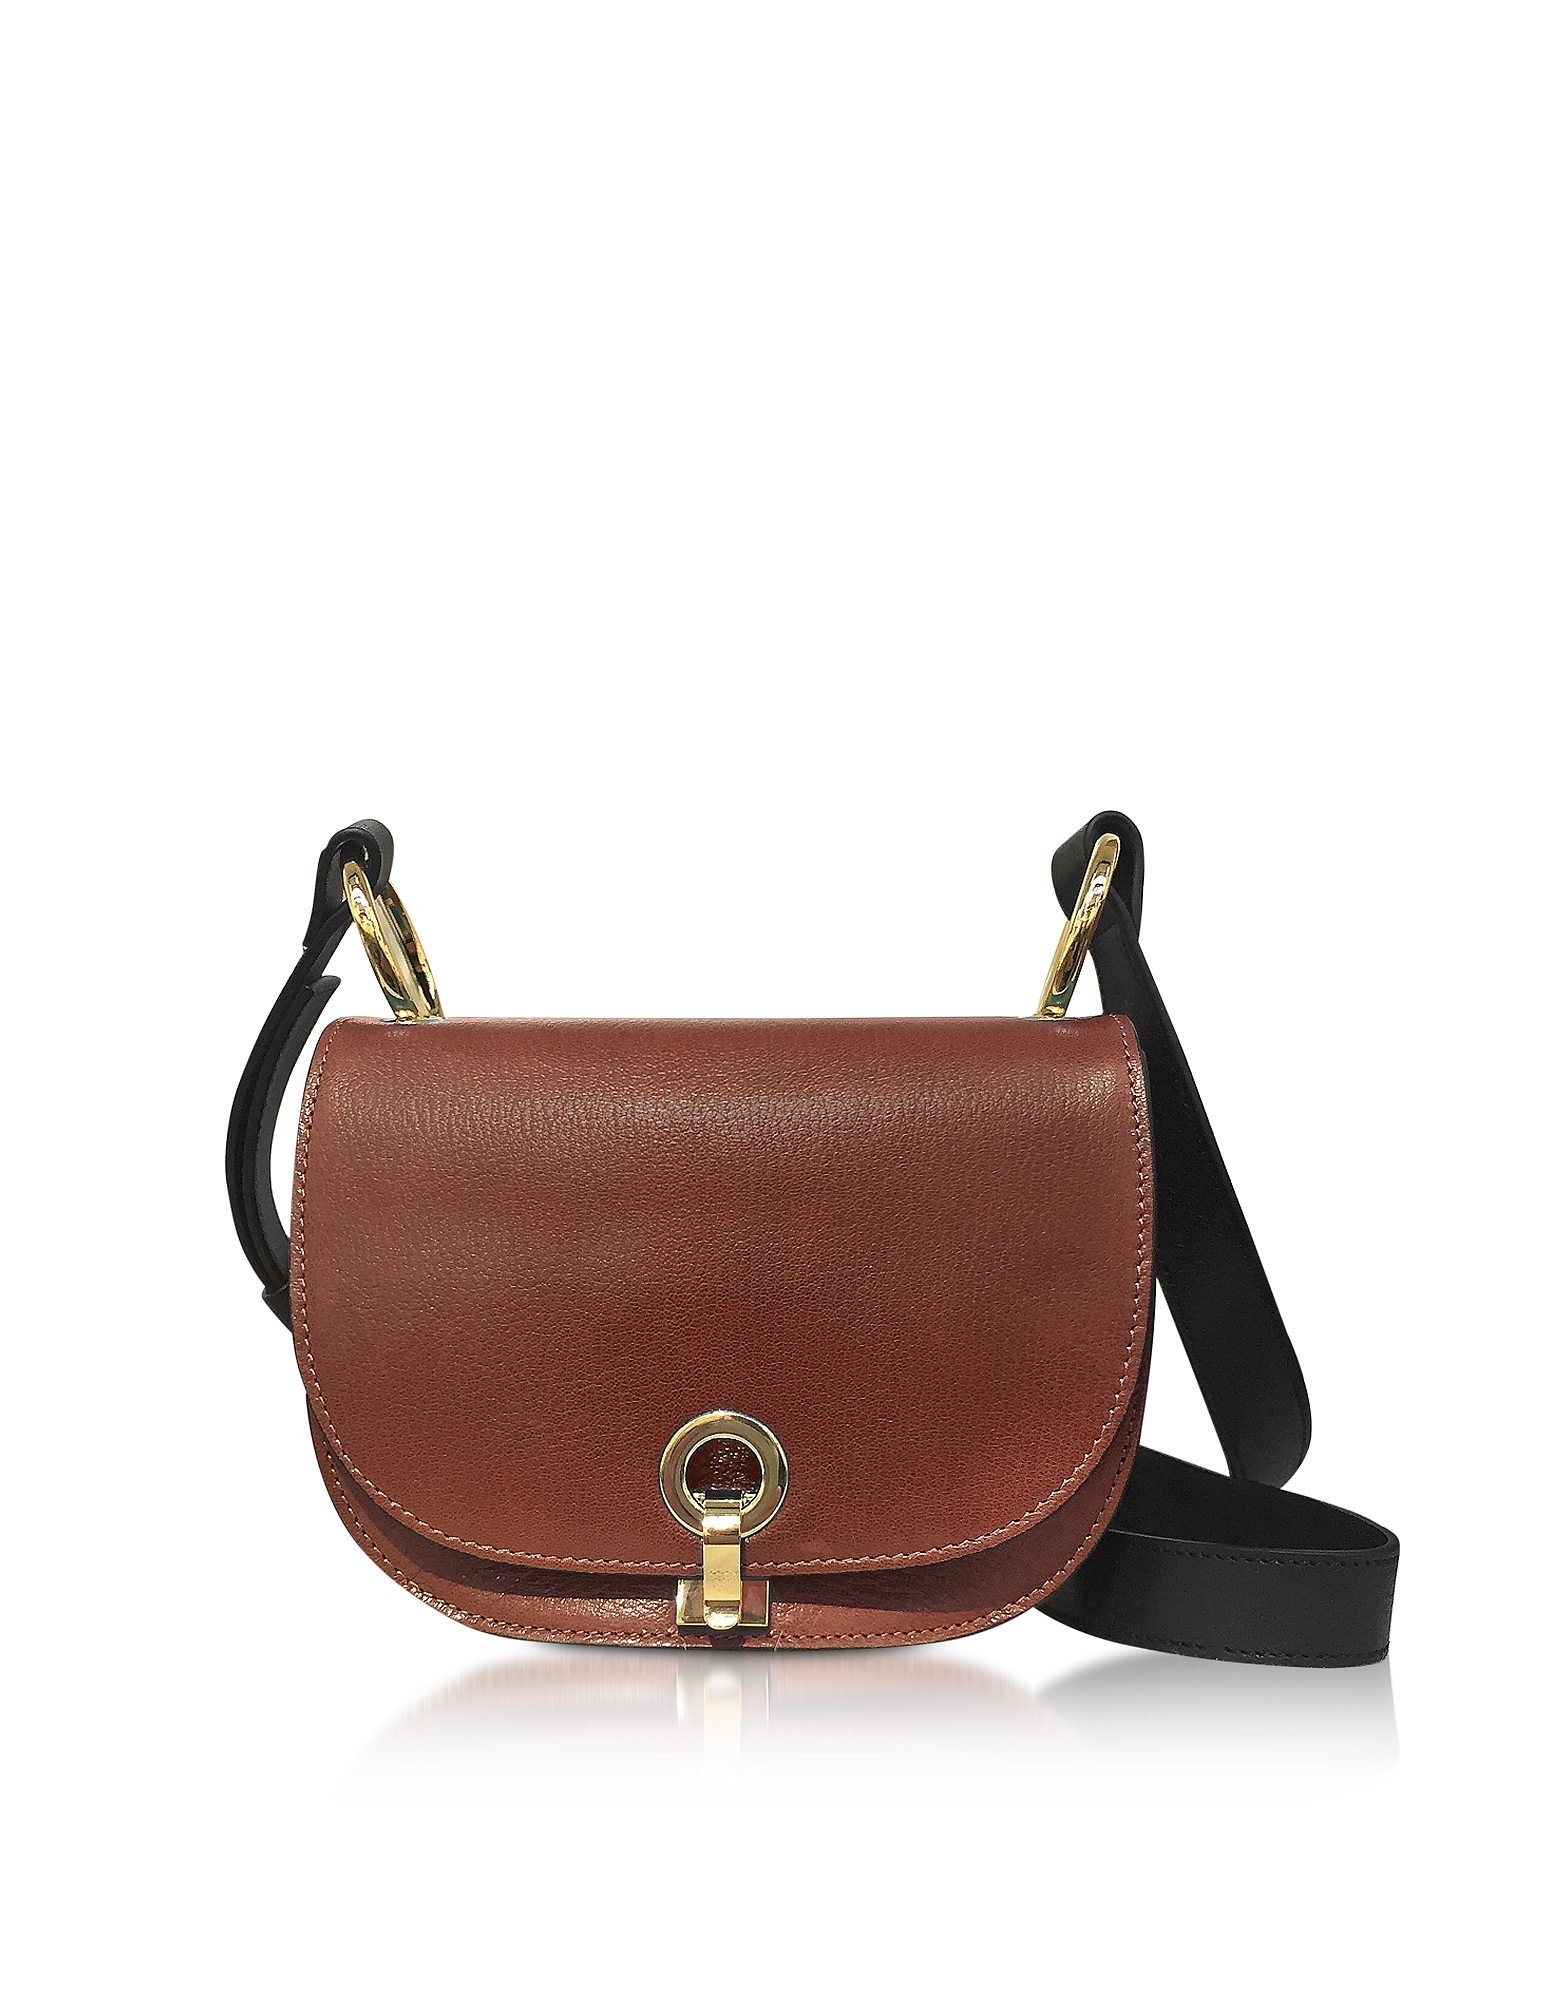 Marni Handbags, Brown and Gold Leather Minuet Shoulder bag